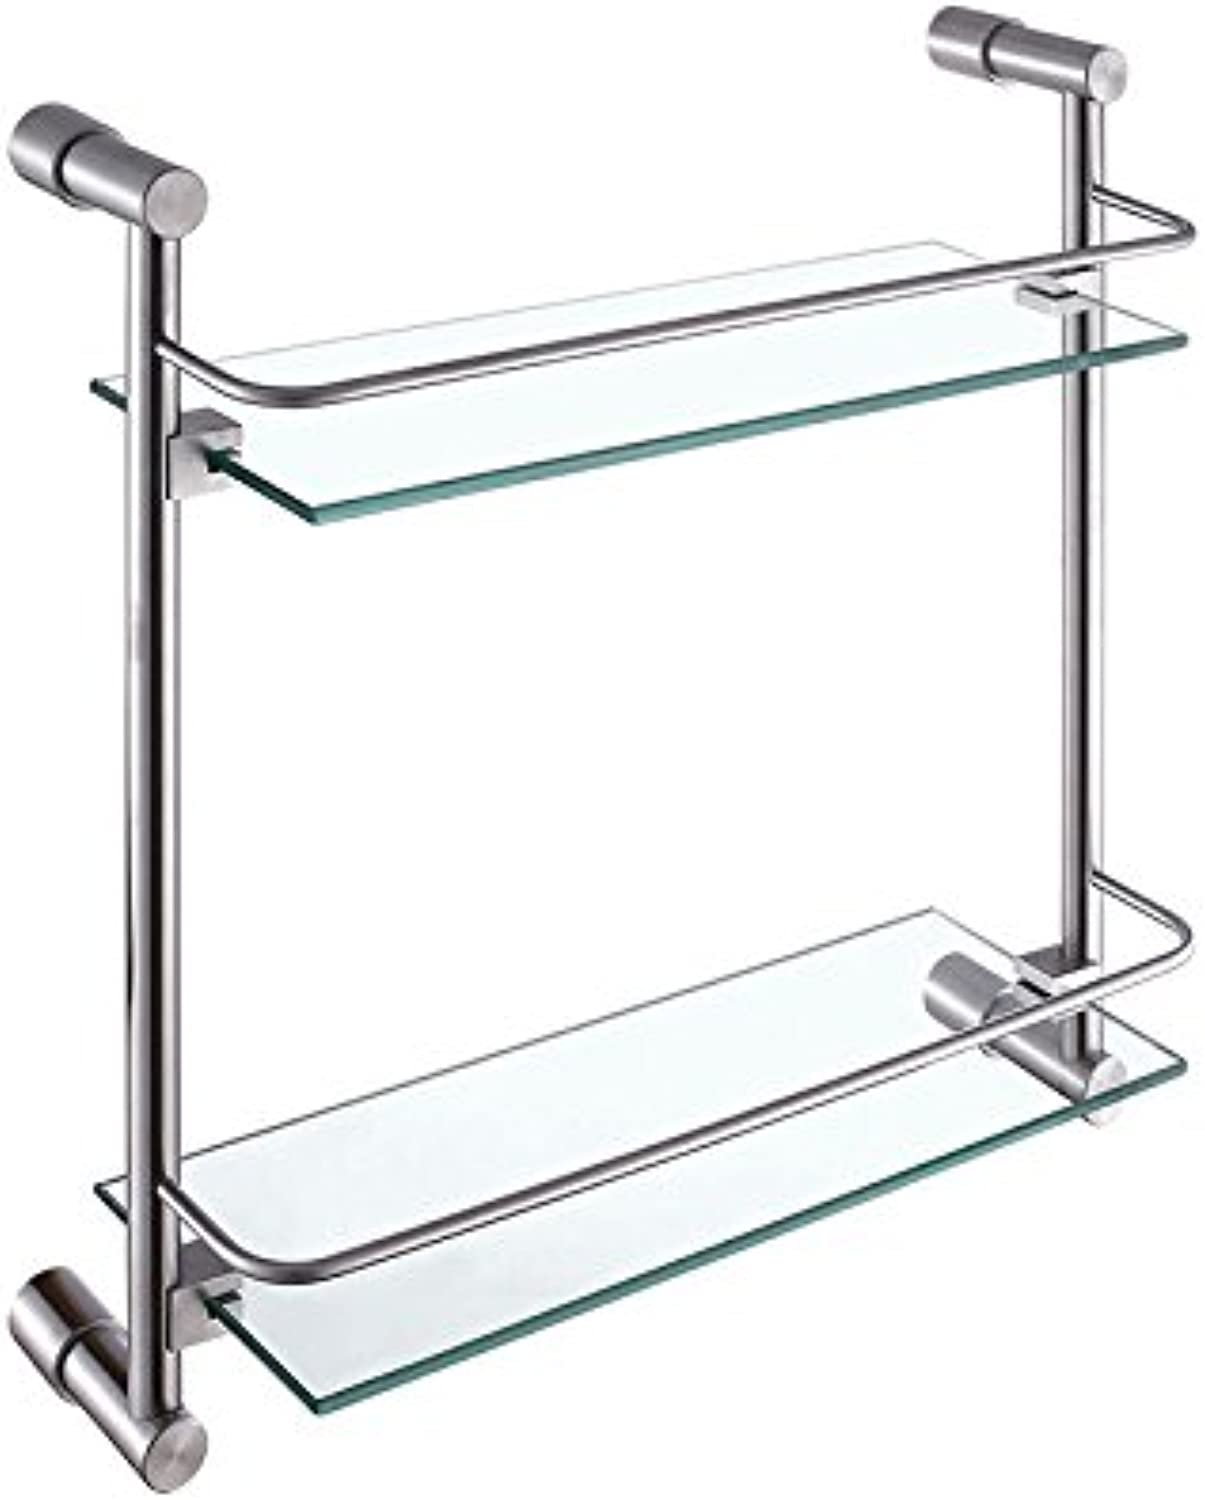 Stainless steel bathroom double glass shelf,A-@wei